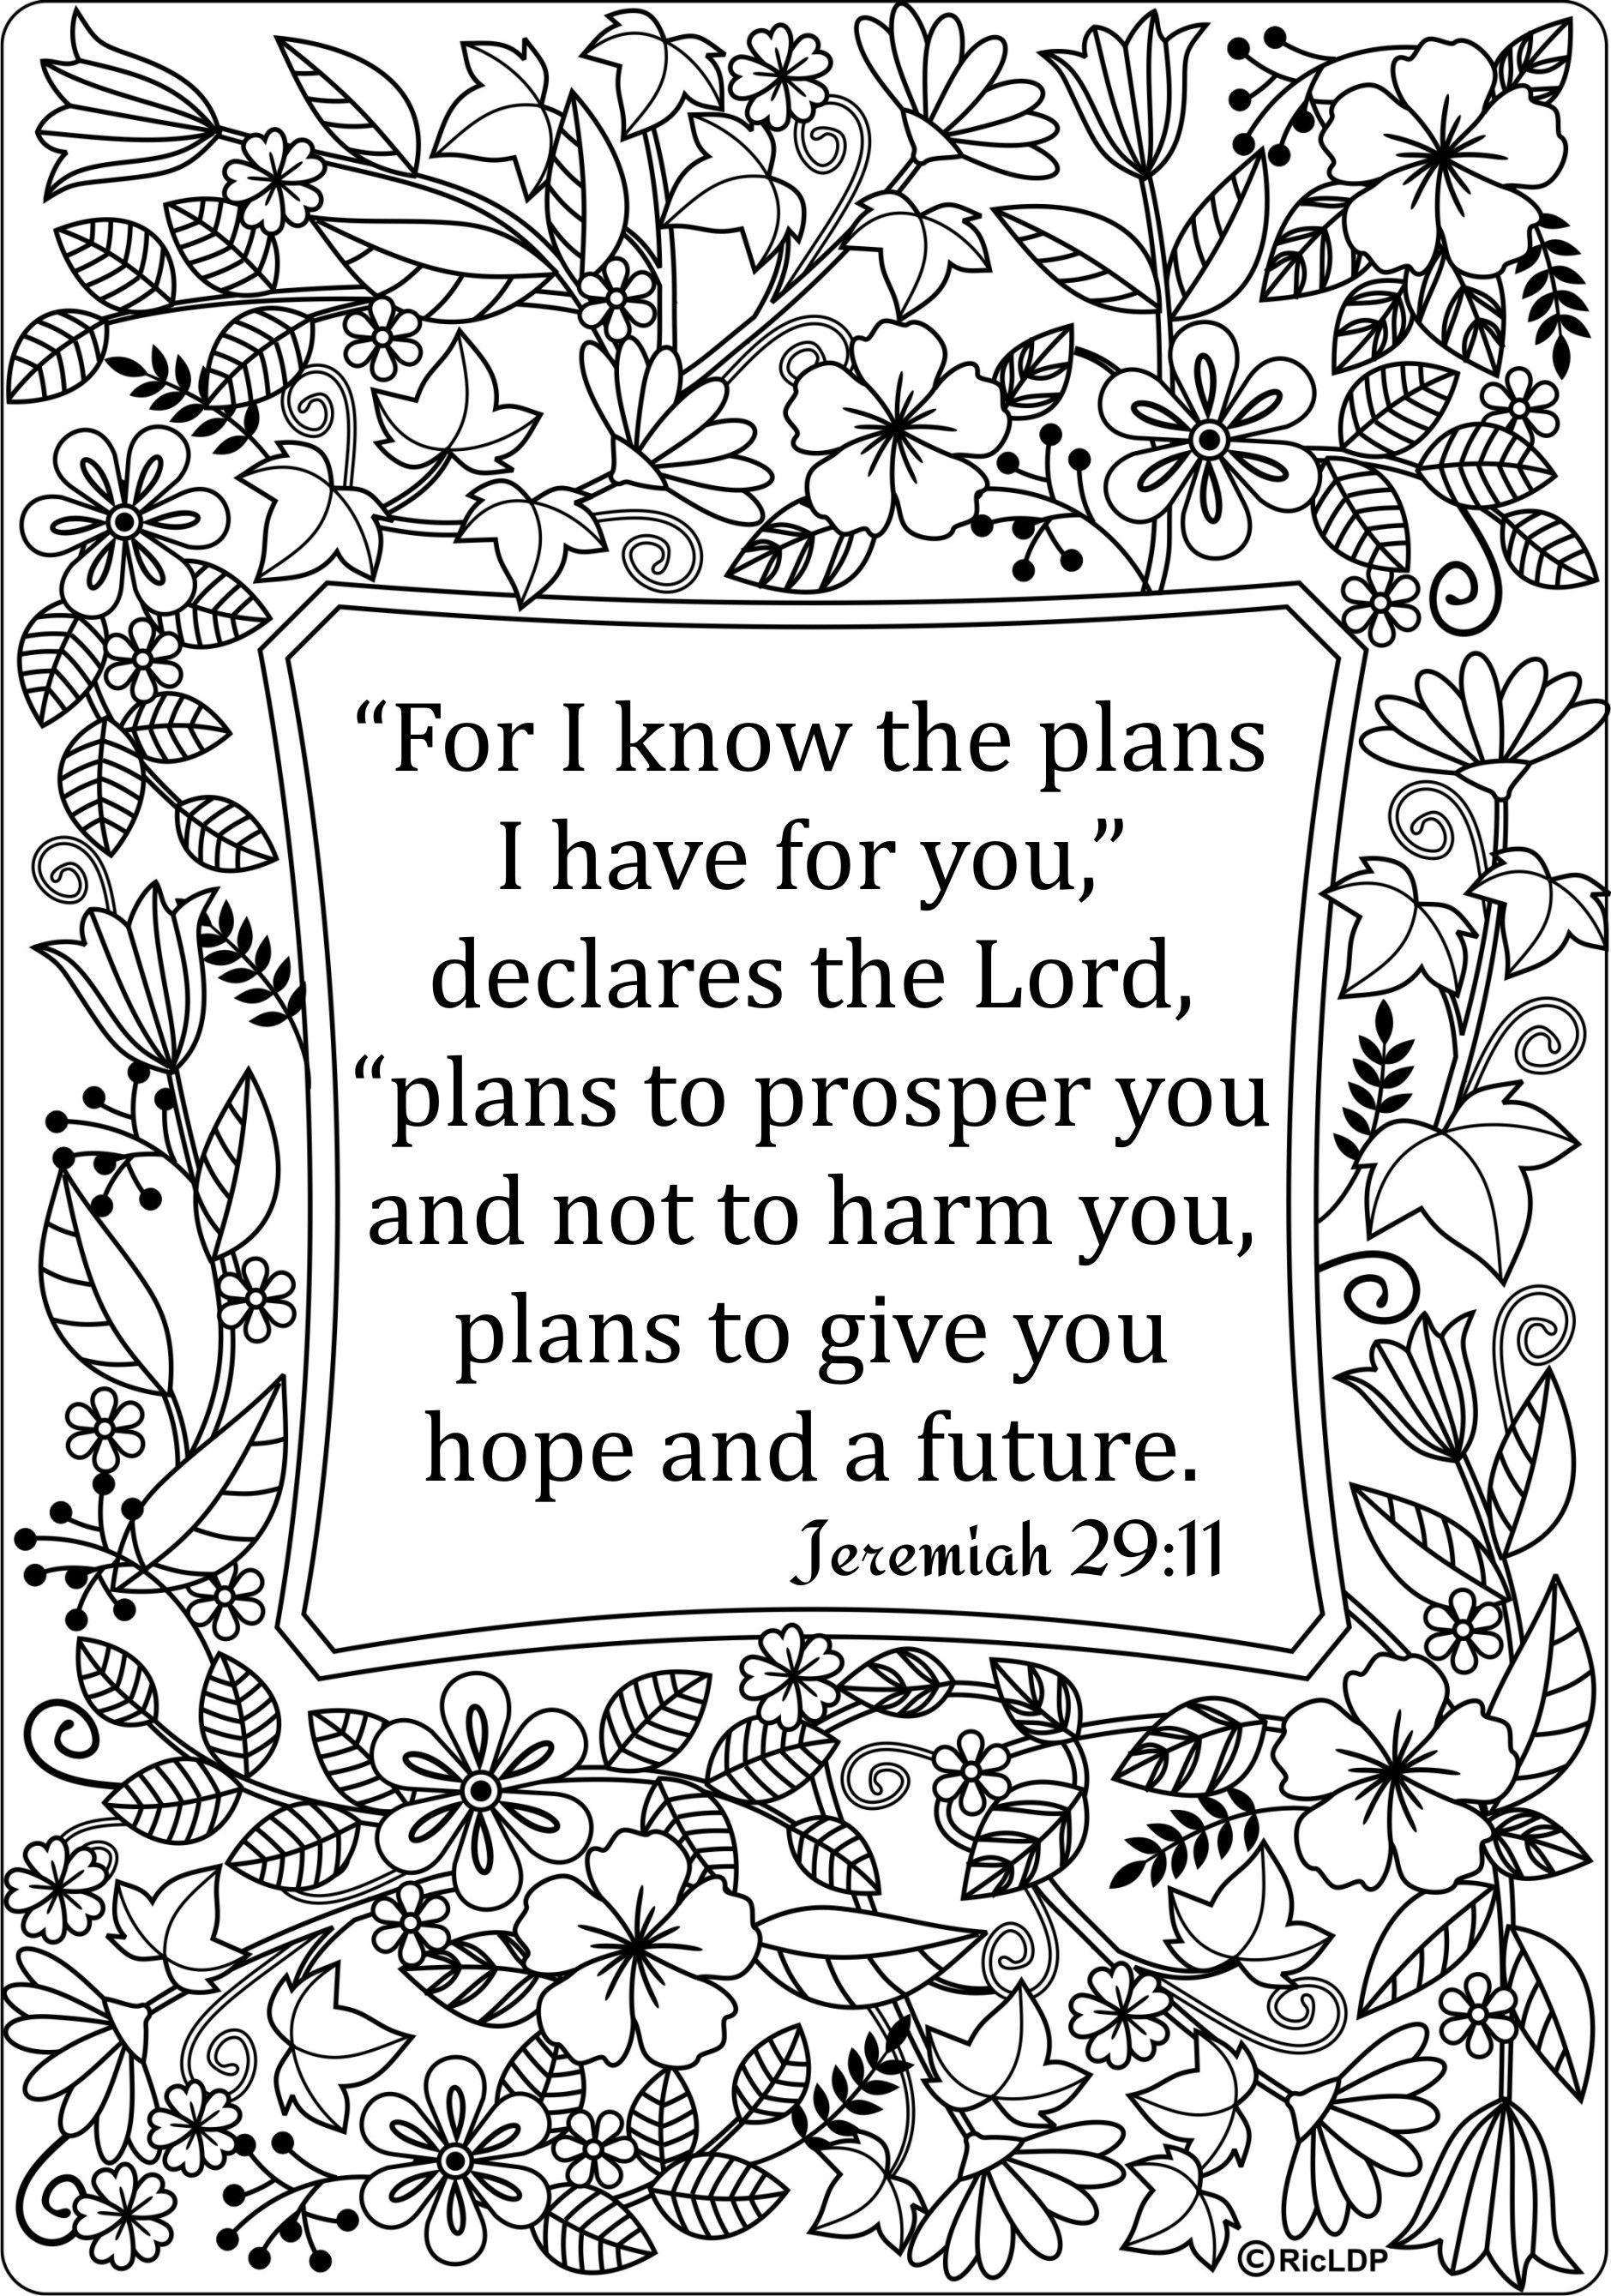 b is for bible coloring page free printable bible verse coloring pages that are is b coloring bible page for